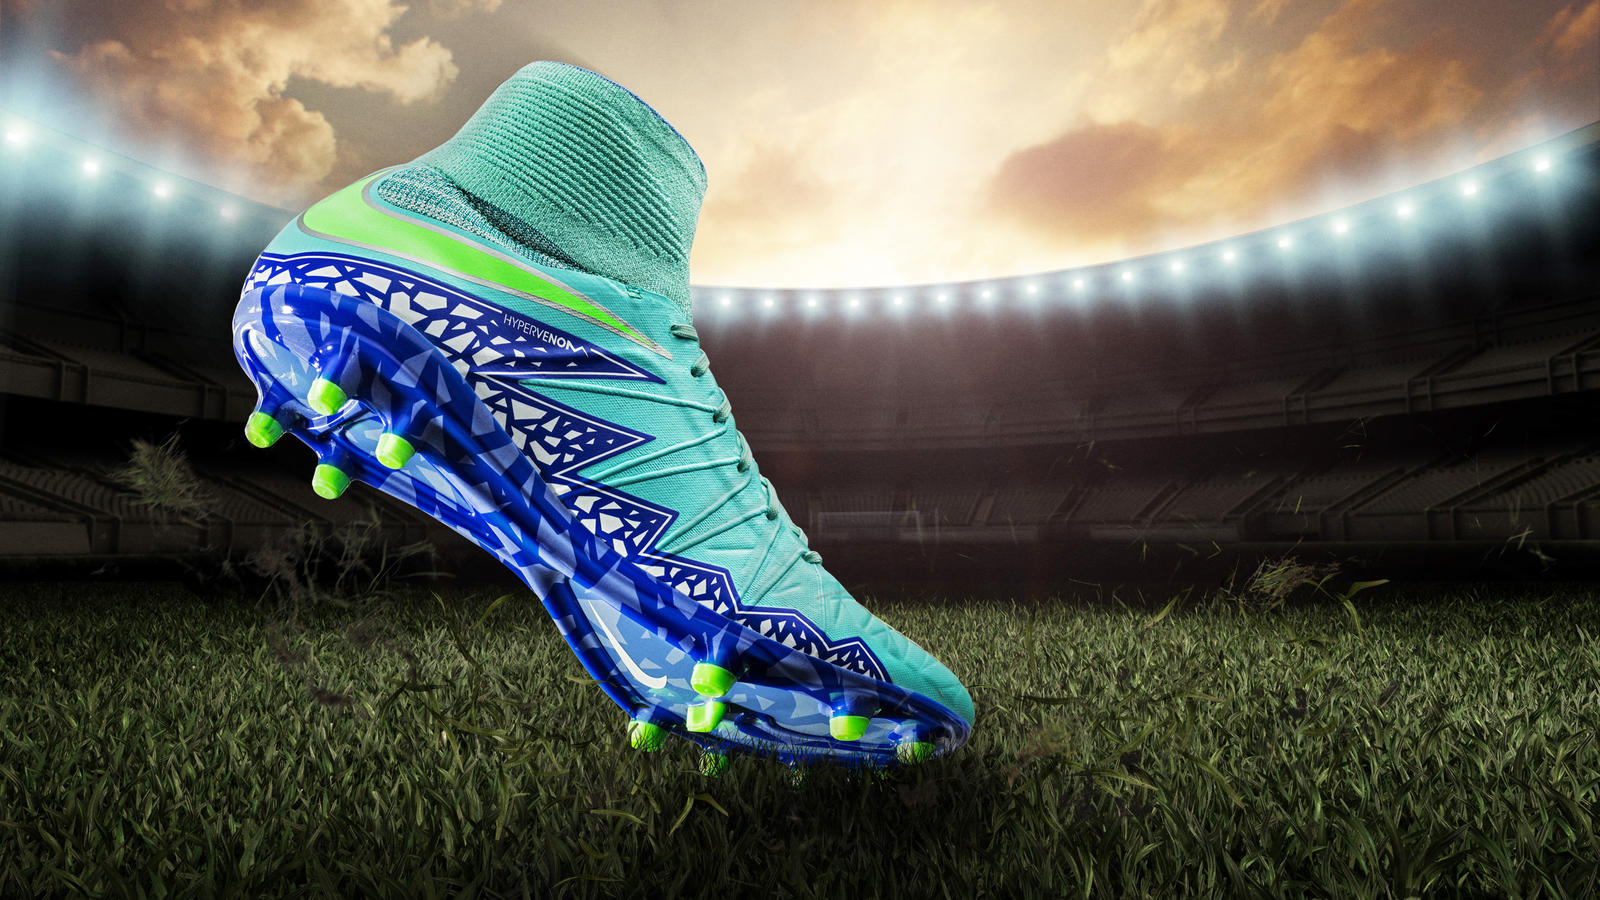 bccd2745b578 NIKE SOCCER UNVEILS ALL-NEW WOMEN S CLEAT PACK FOR 2016 - Nike News